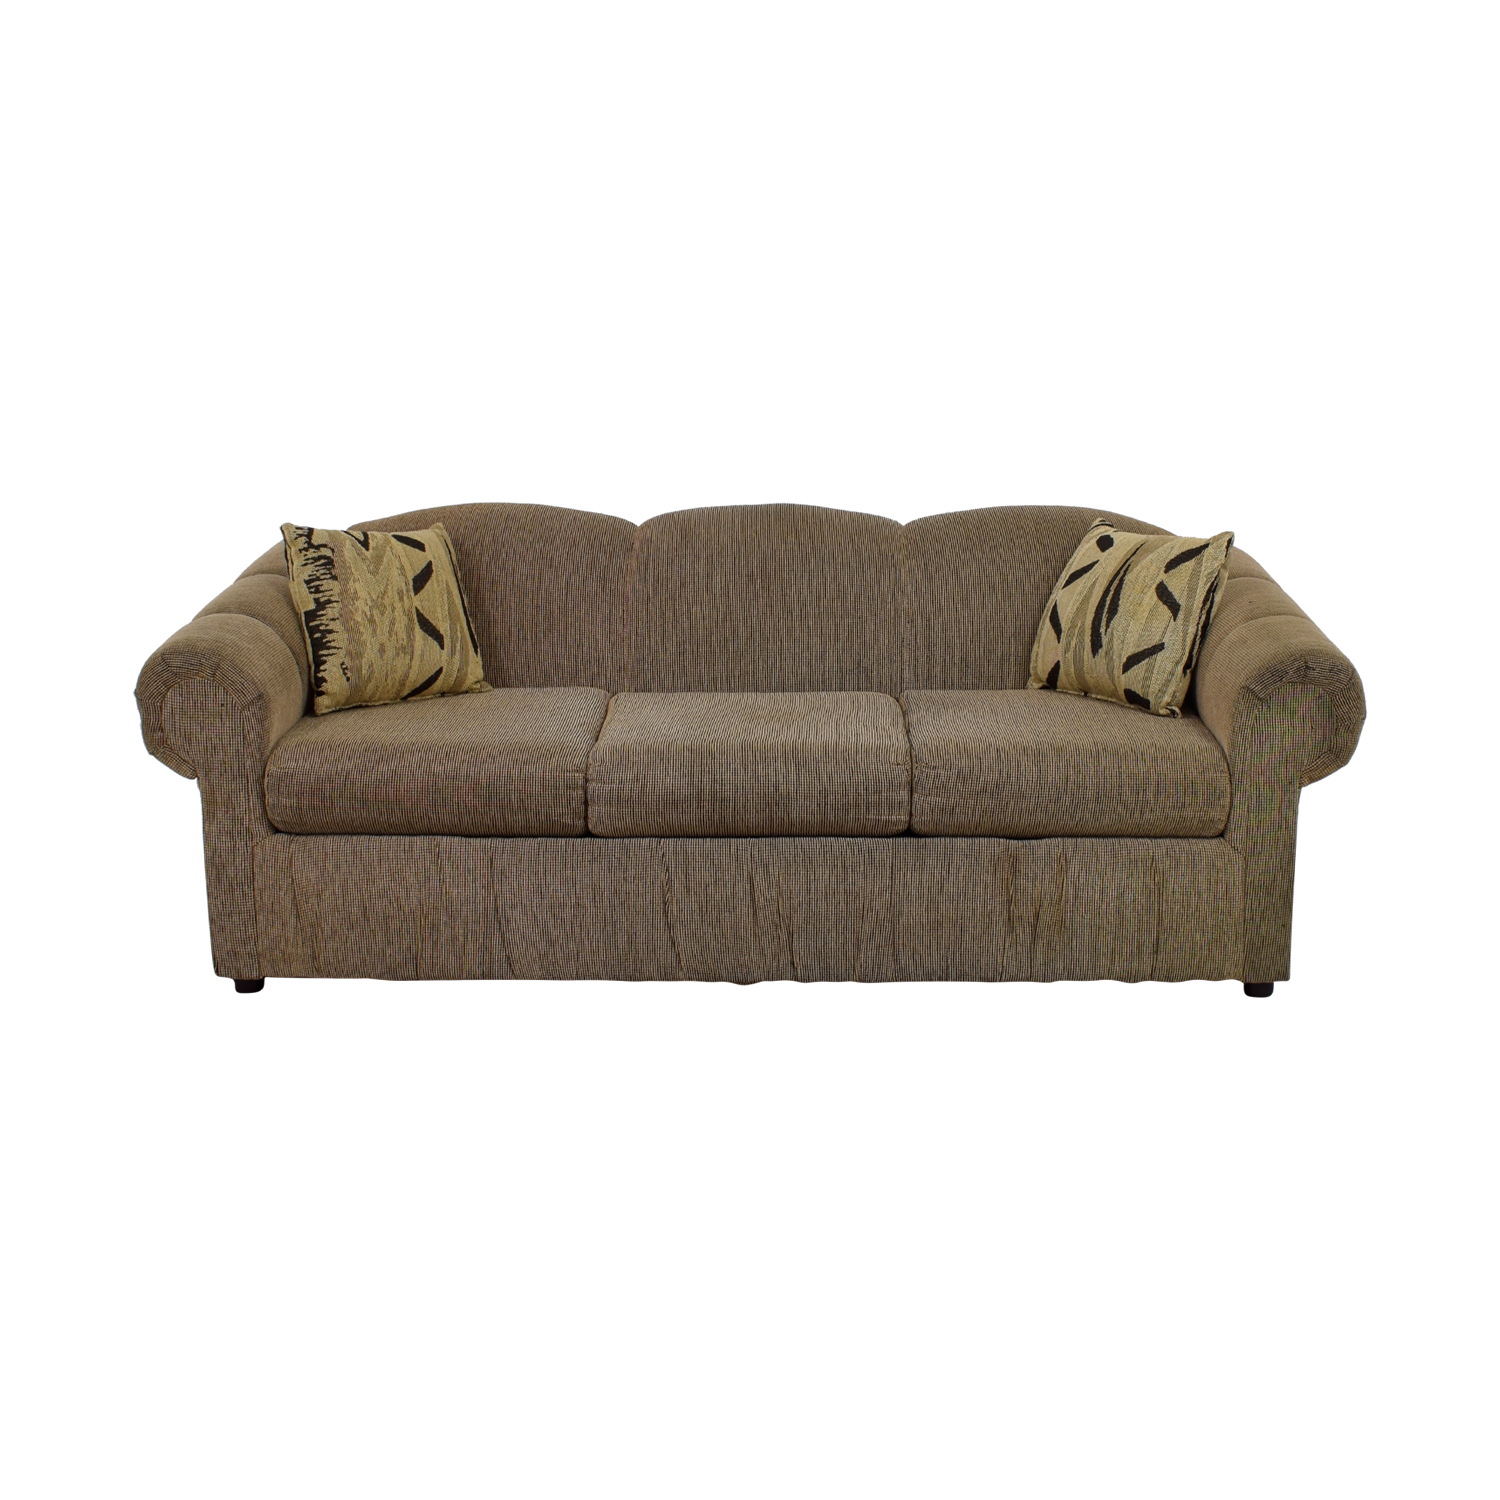 Tan Three-Cushion Sofa Unkown